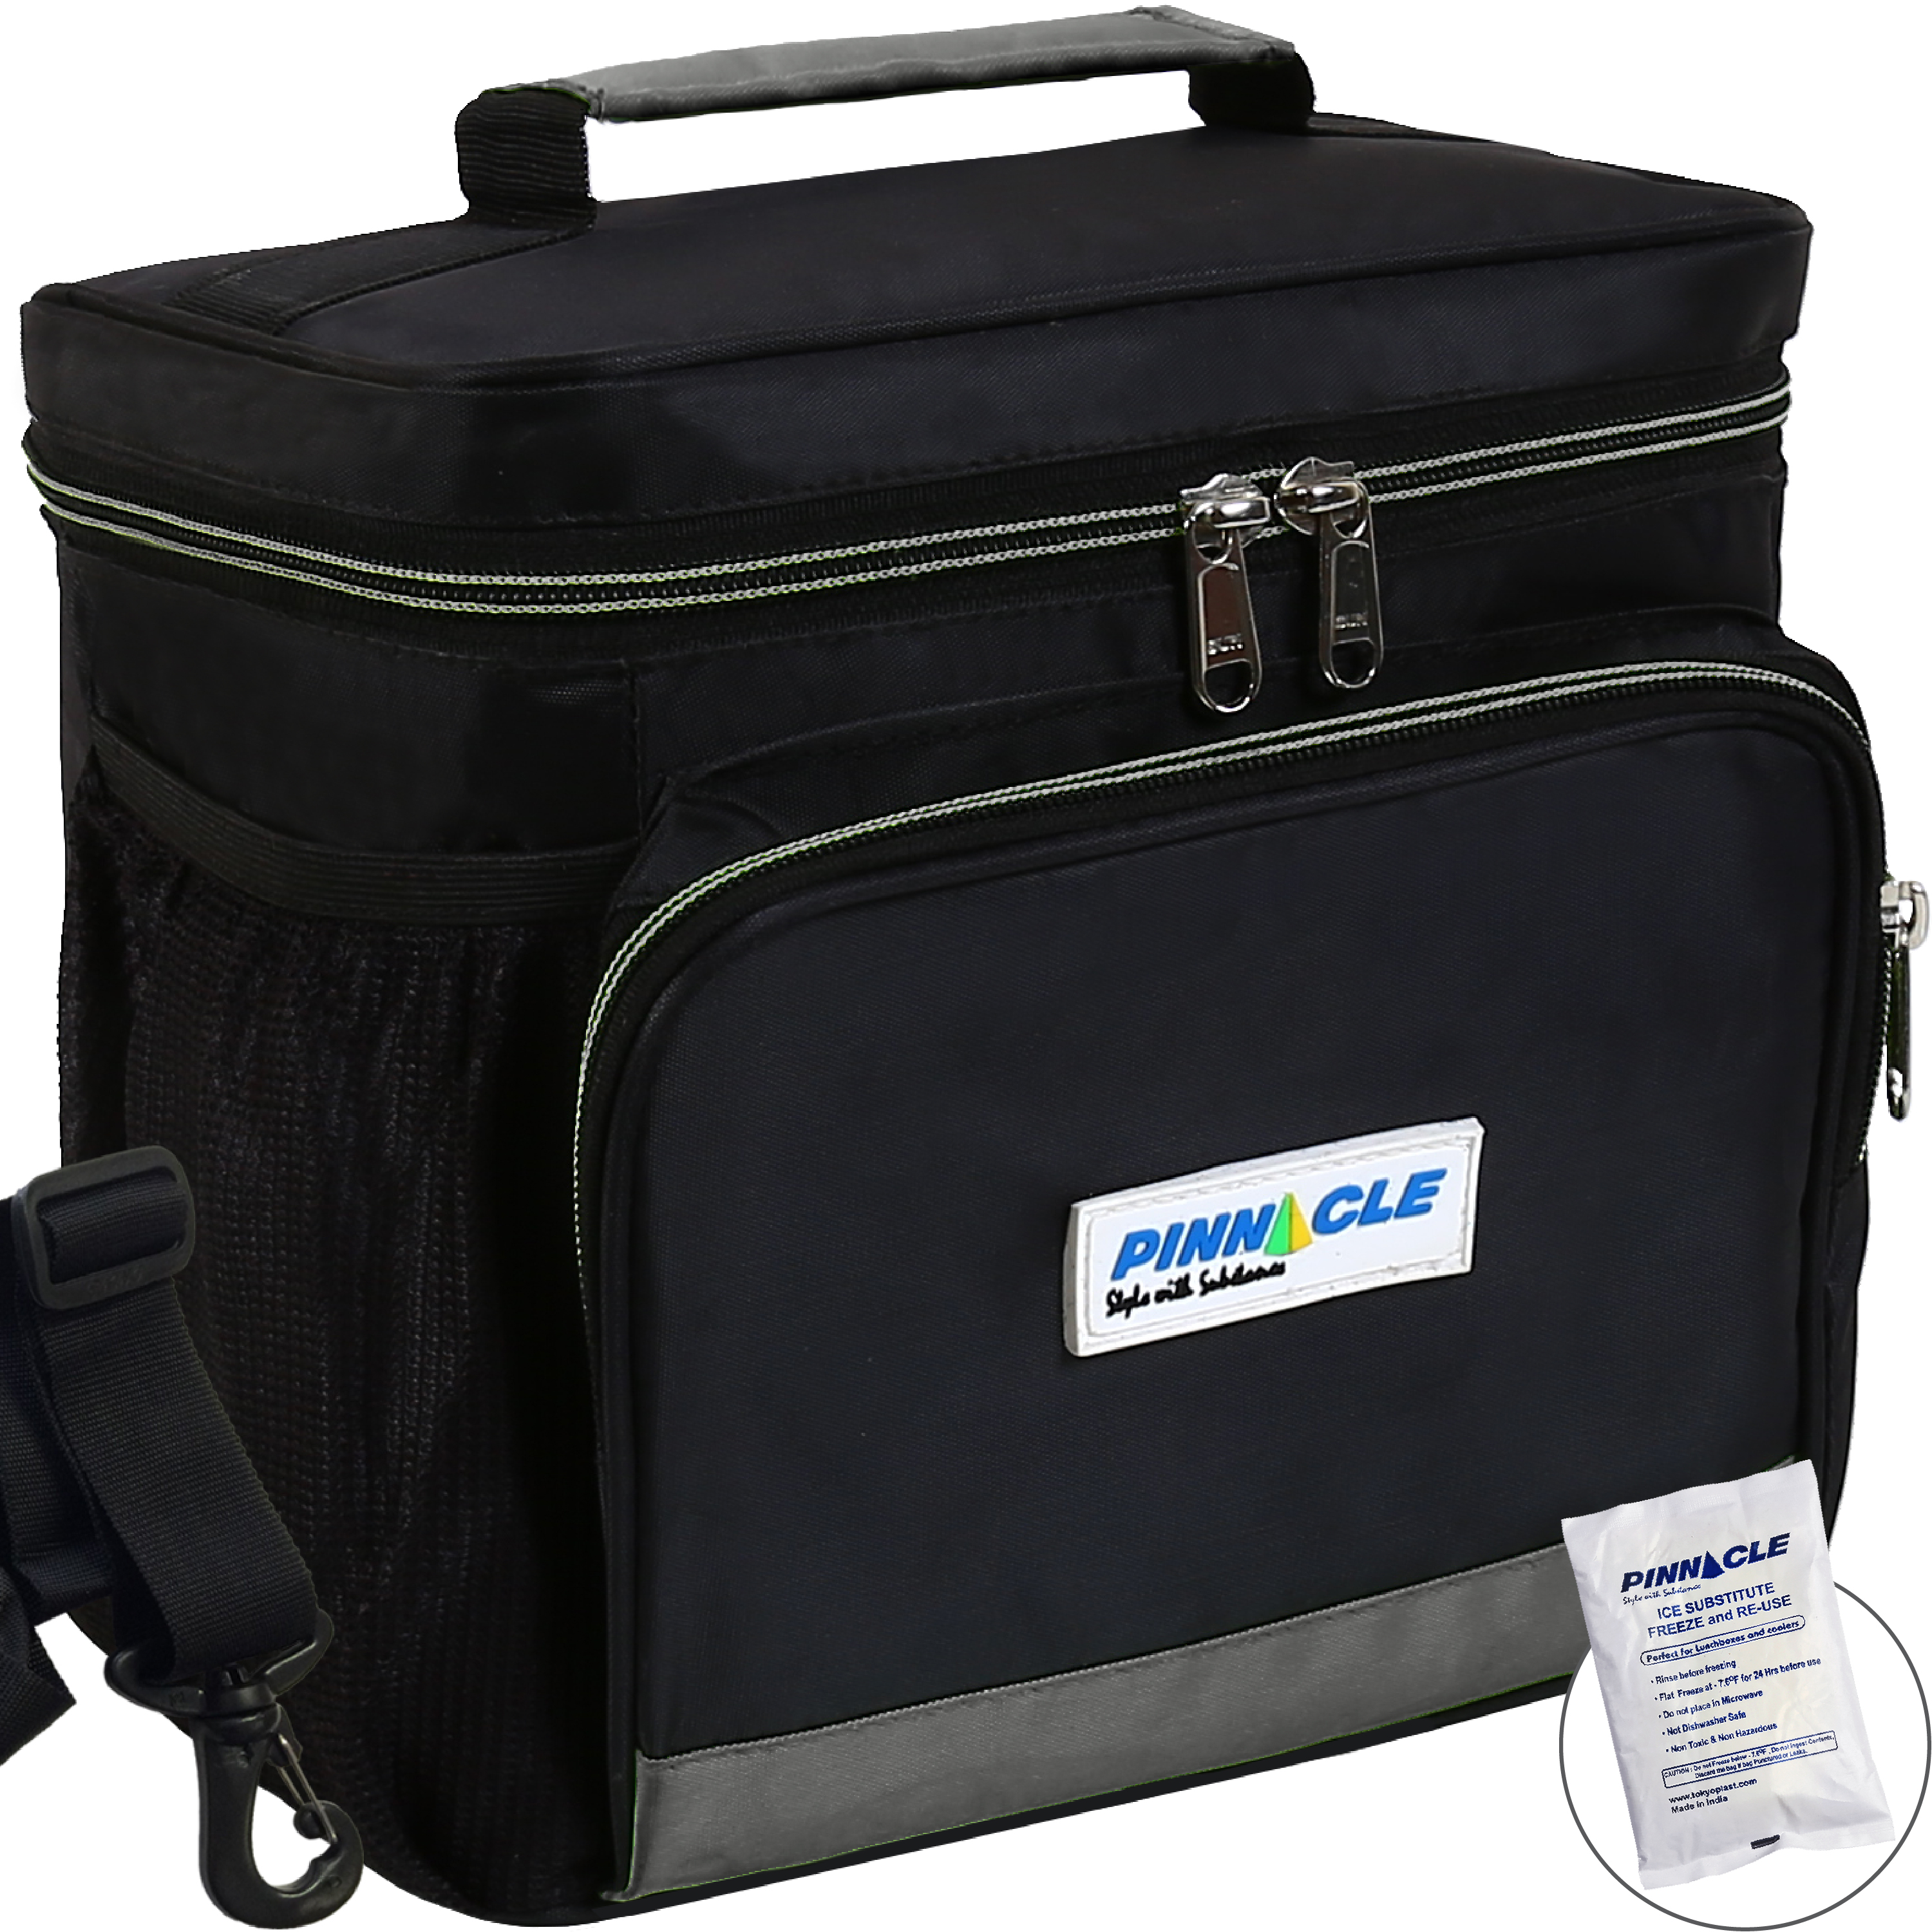 INSULATED LUNCH BAG KIT For Work - Pinnacle Cooler Bag for Adults, Ladies and Men + GEL ICE PACK - Durable Nylon, Double Zipper - Black & Gray